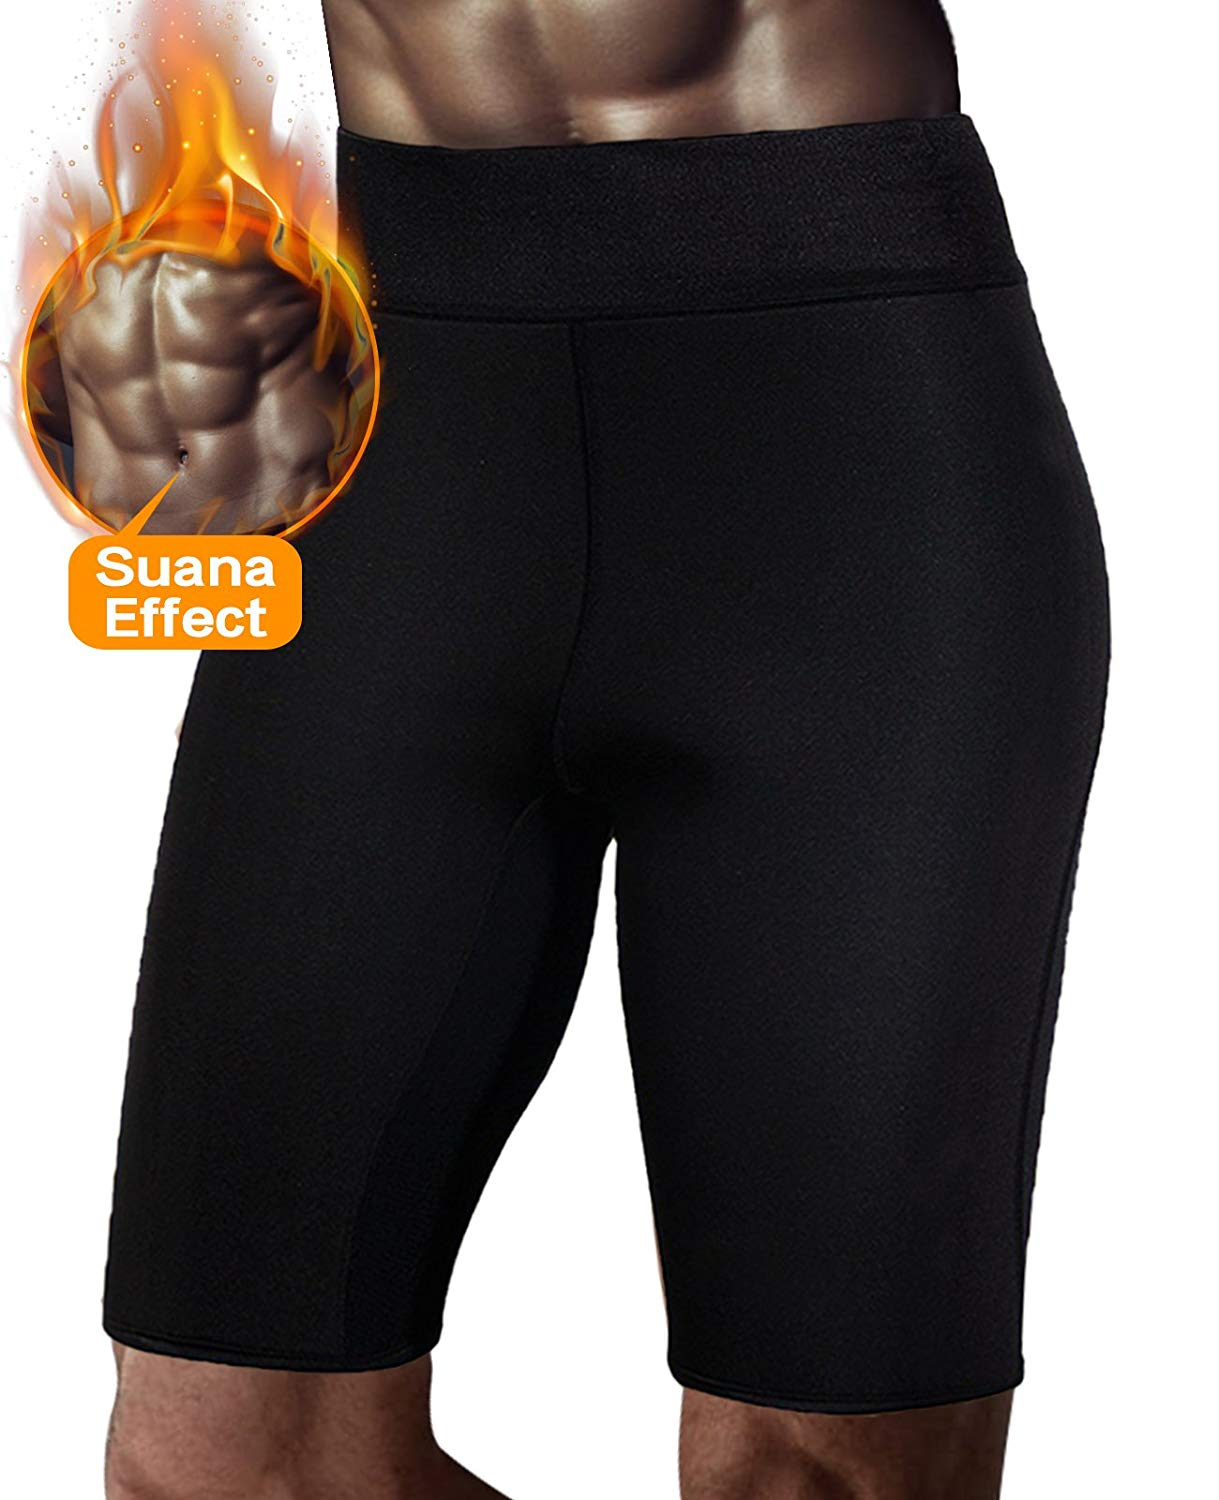 493d3f415a5 Get Quotations · SETENOW Men s Slimming Sauna Pants Hot Sweat Neoprene for Weight  Loss Fat Burning Body Shaper Sweat